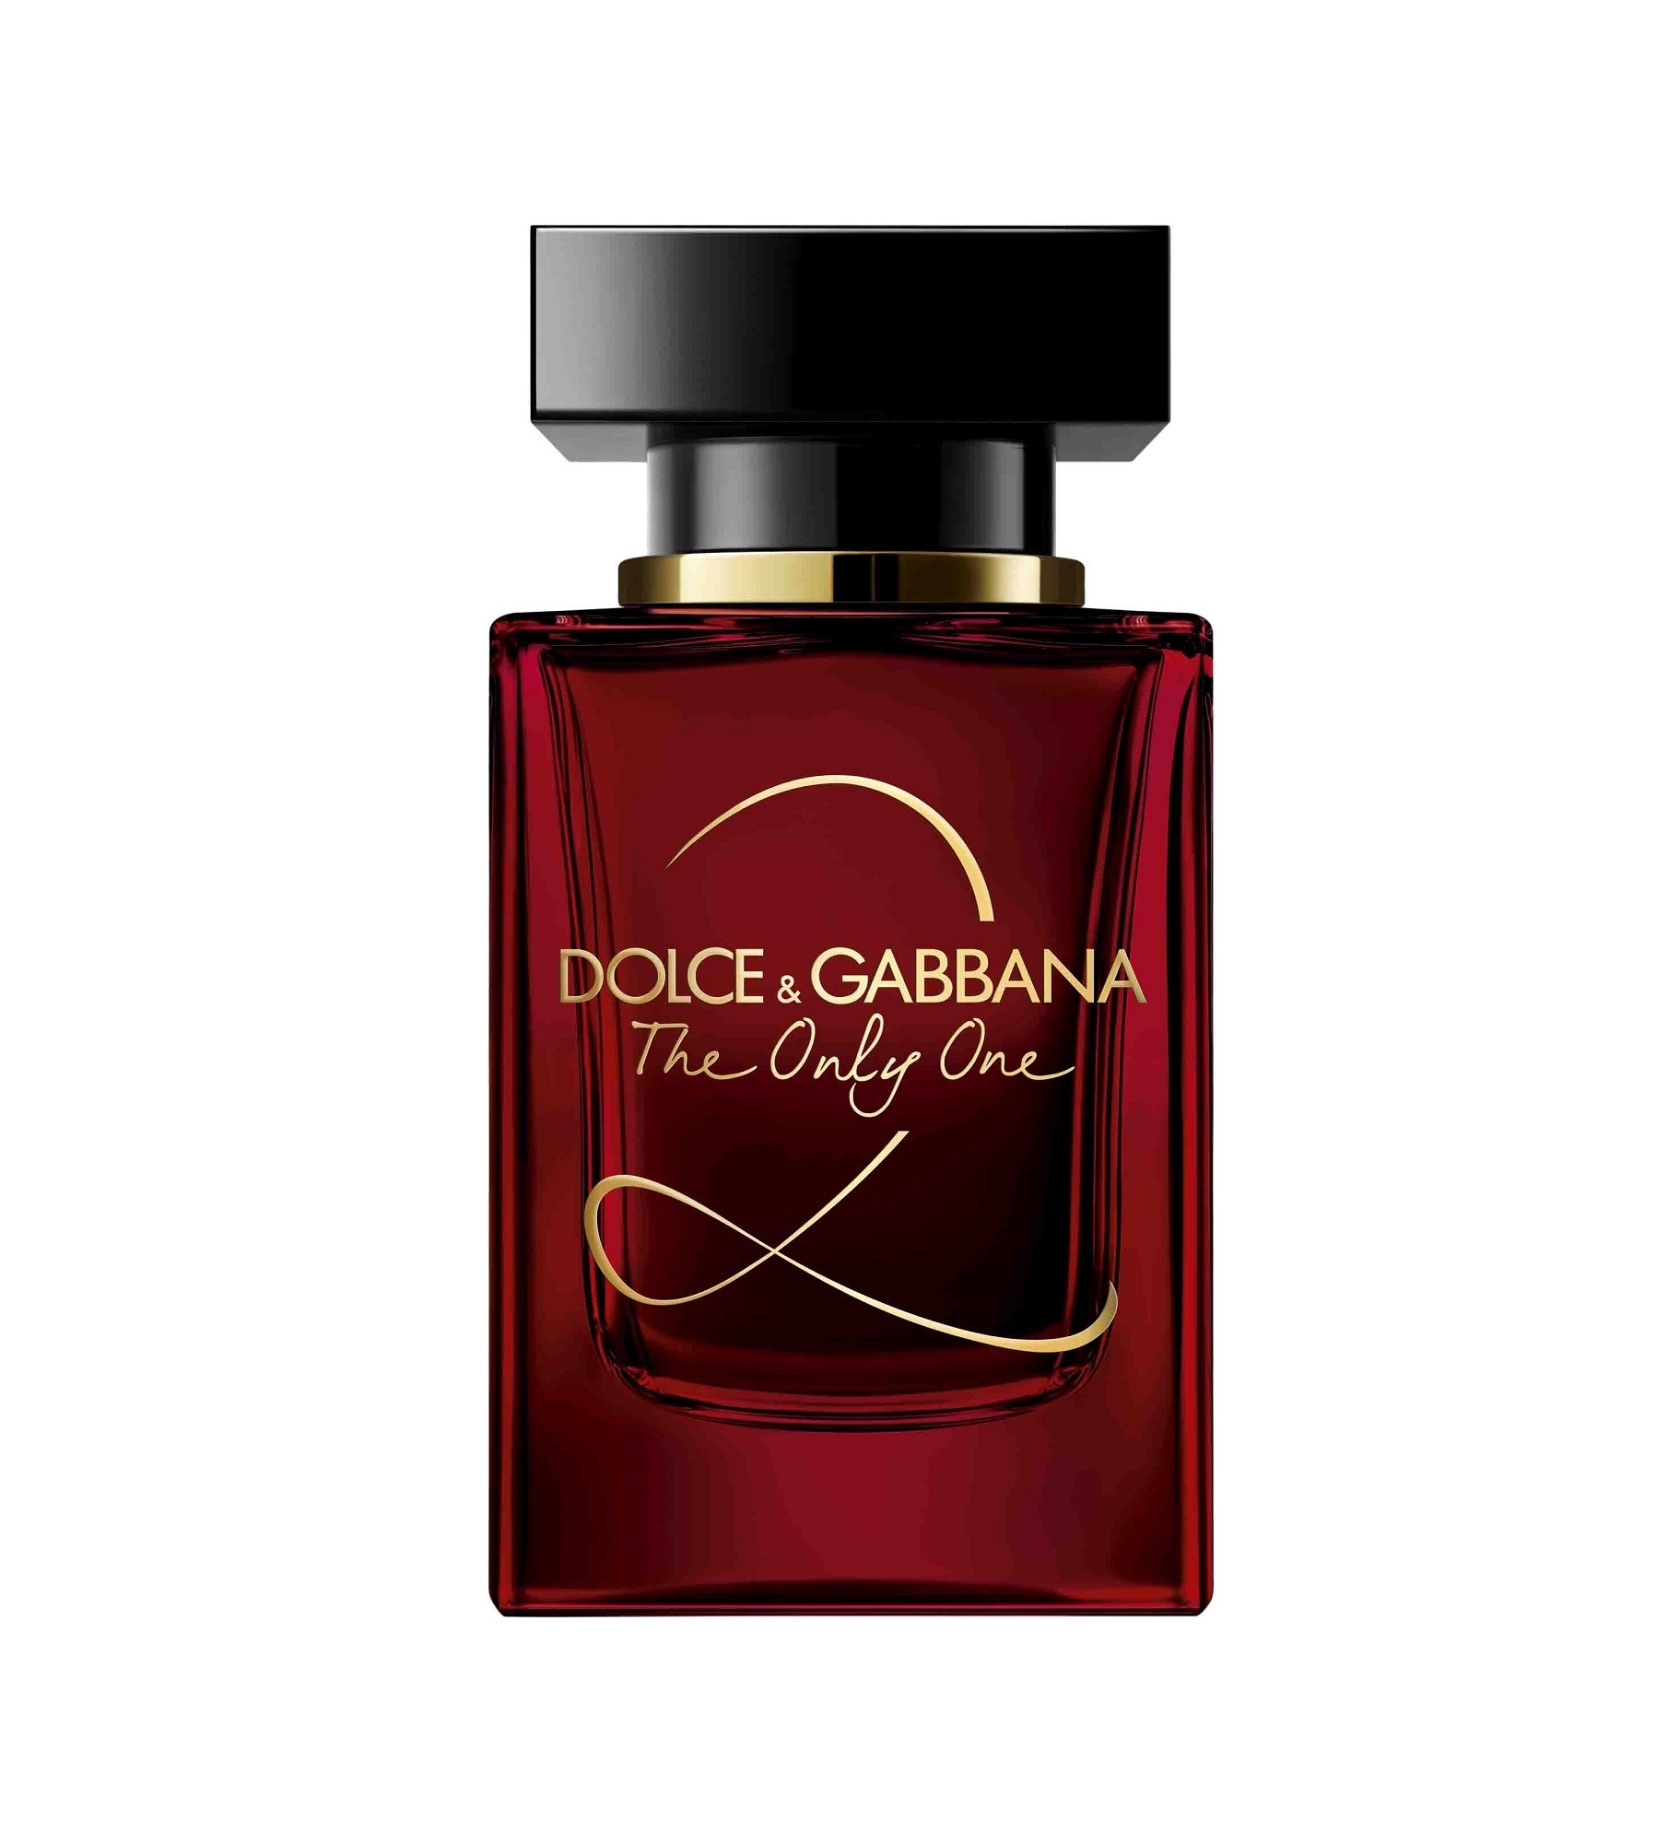 Dolce & Gabbana The Only One 2 Eau De Parfum 30ml